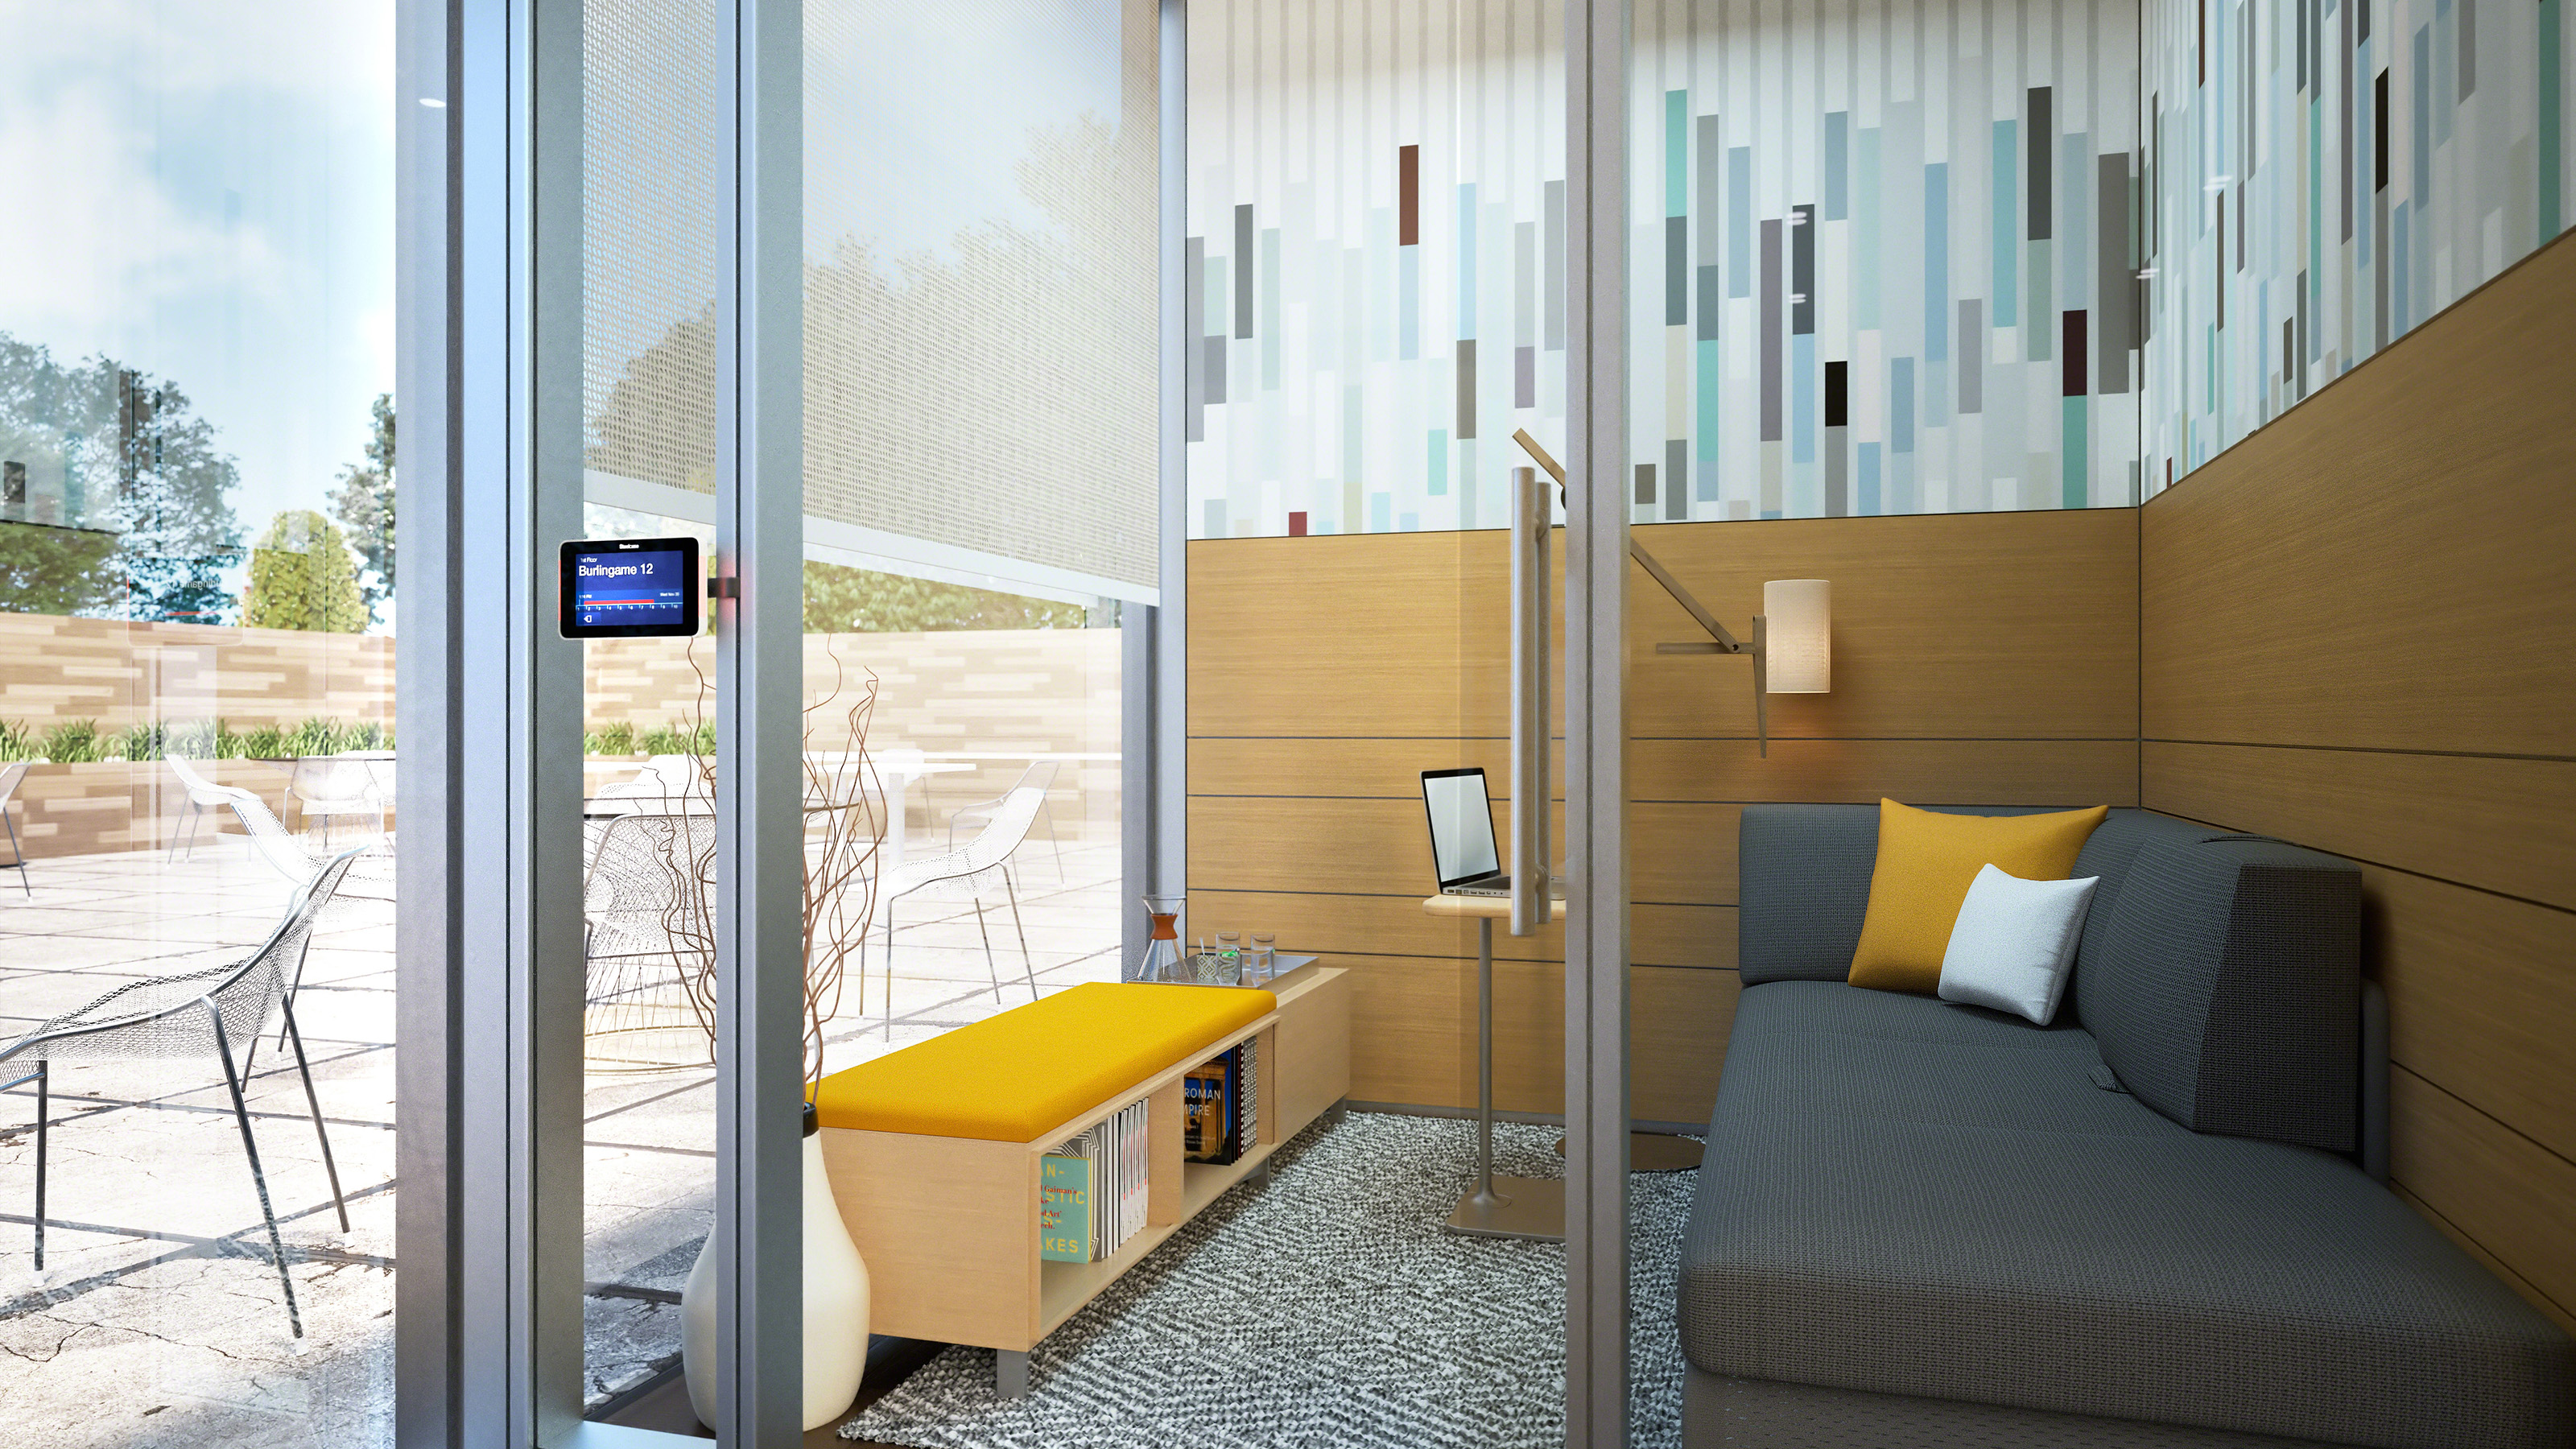 A V.I.A private room with glass exterior and an outside view. V.I.A. offers superior acoustical privacy and an aesthetically pleasing look. The system allows for complete customization.